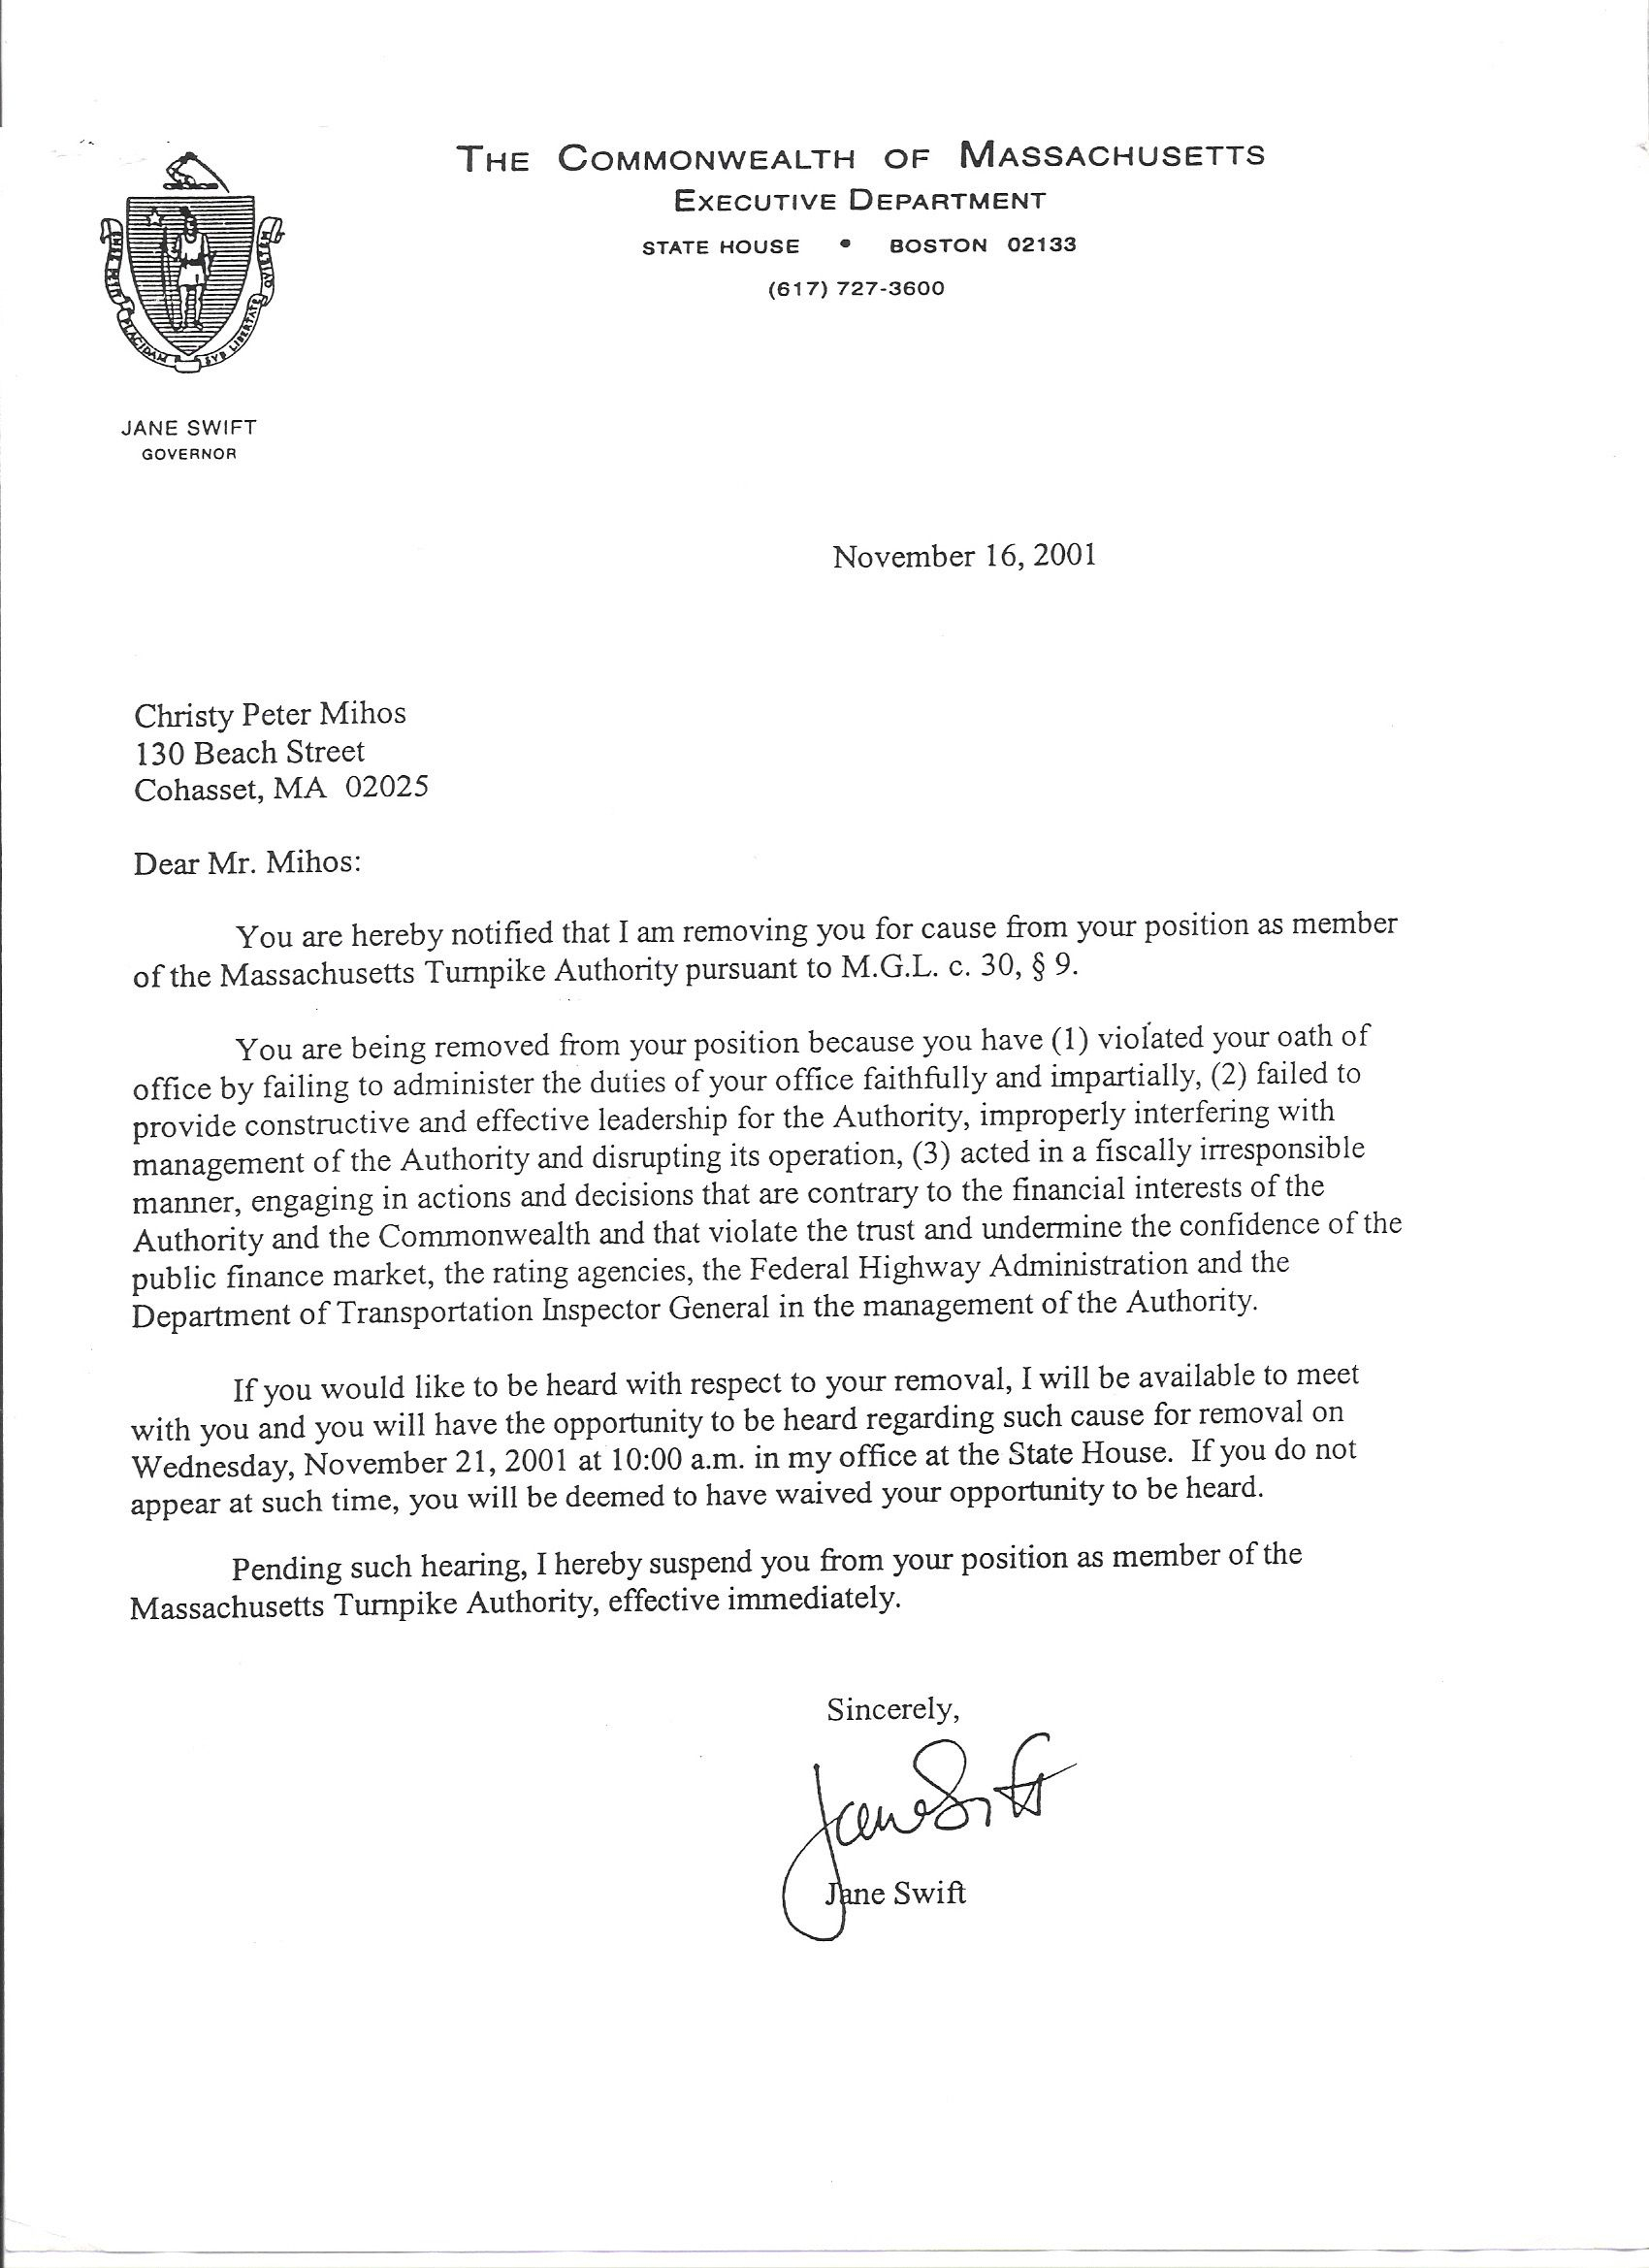 public record removal letter template example-ficial Letter Removal From Jane Swift Rotten To The Core ficial Letter Business Letter Sample 3-b